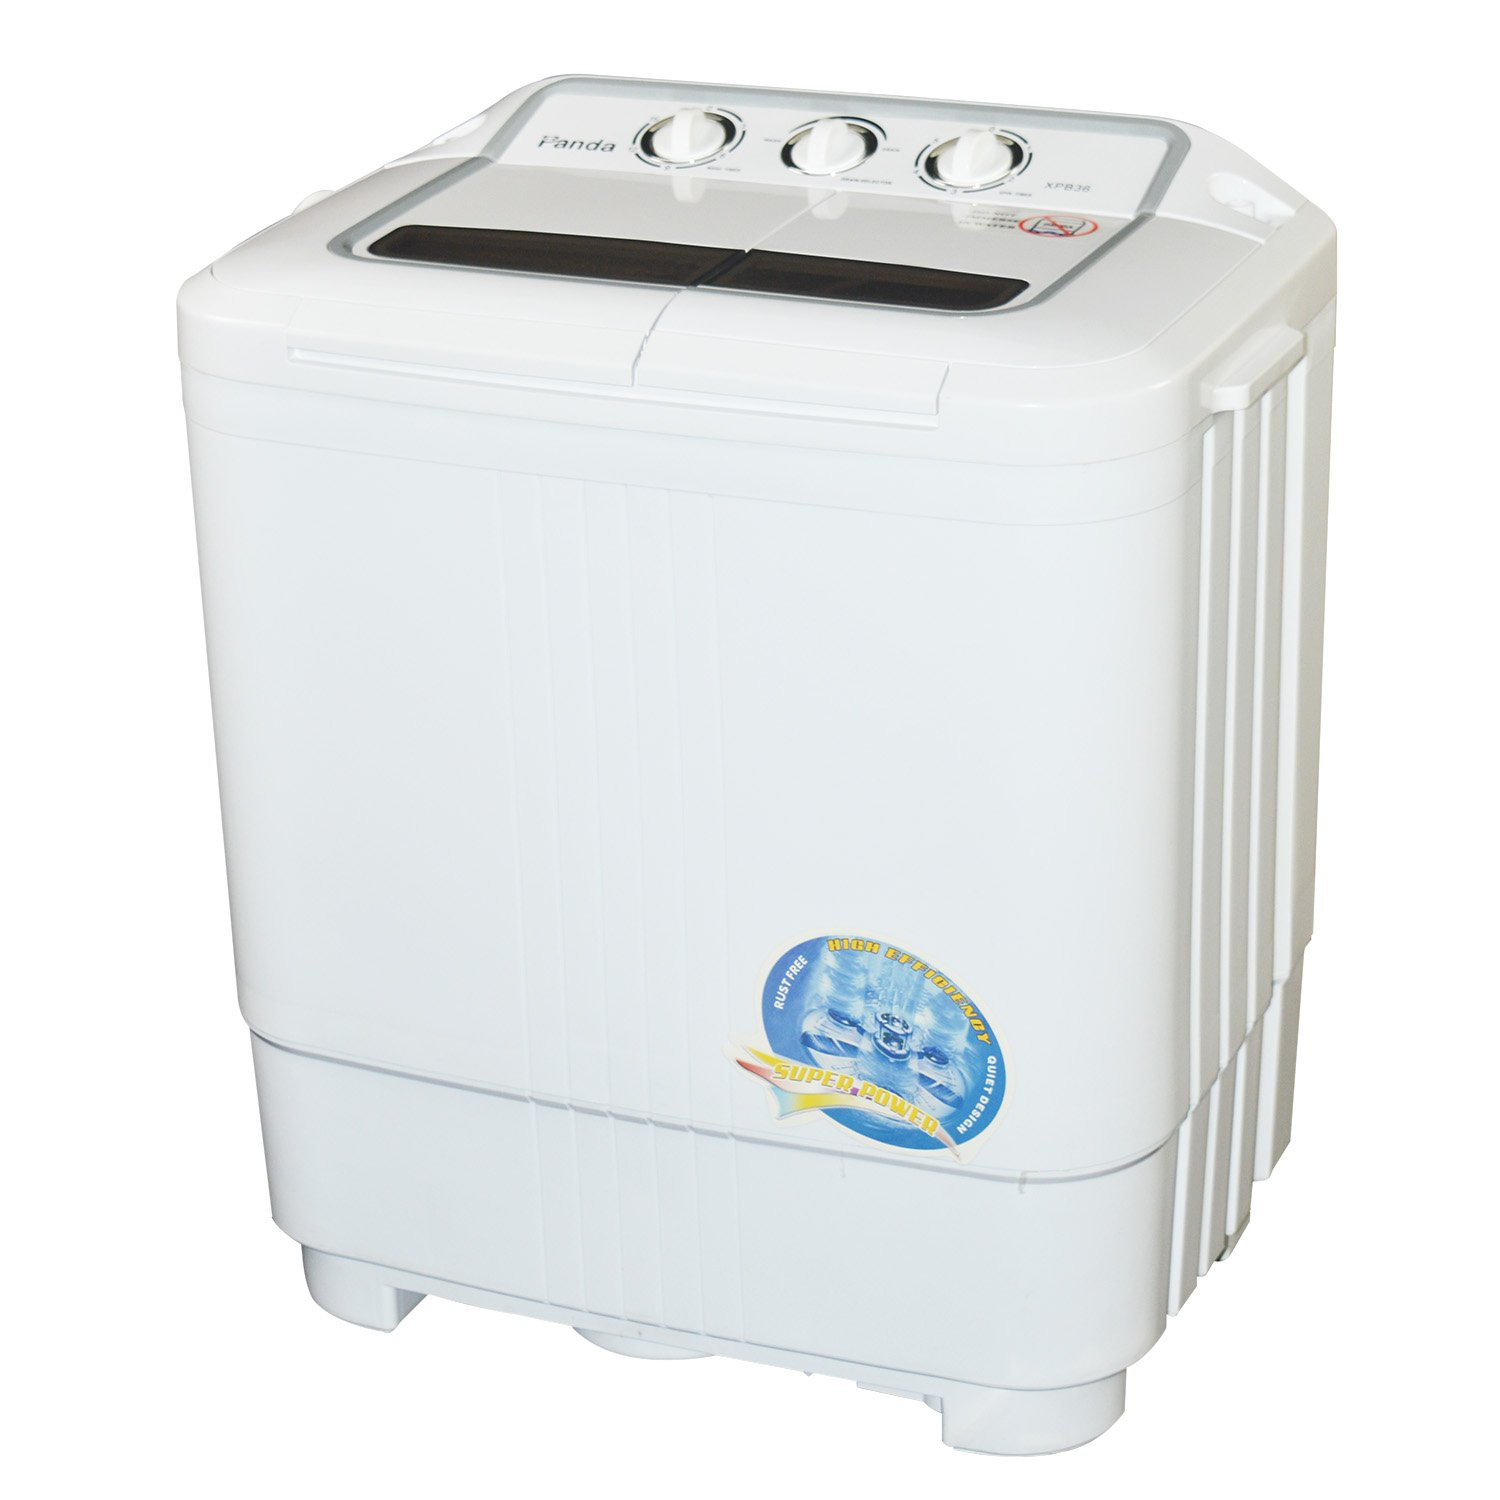 Panda Small Compact Portable Washing Machine 7.9lbs Capacity with Spin Dryer